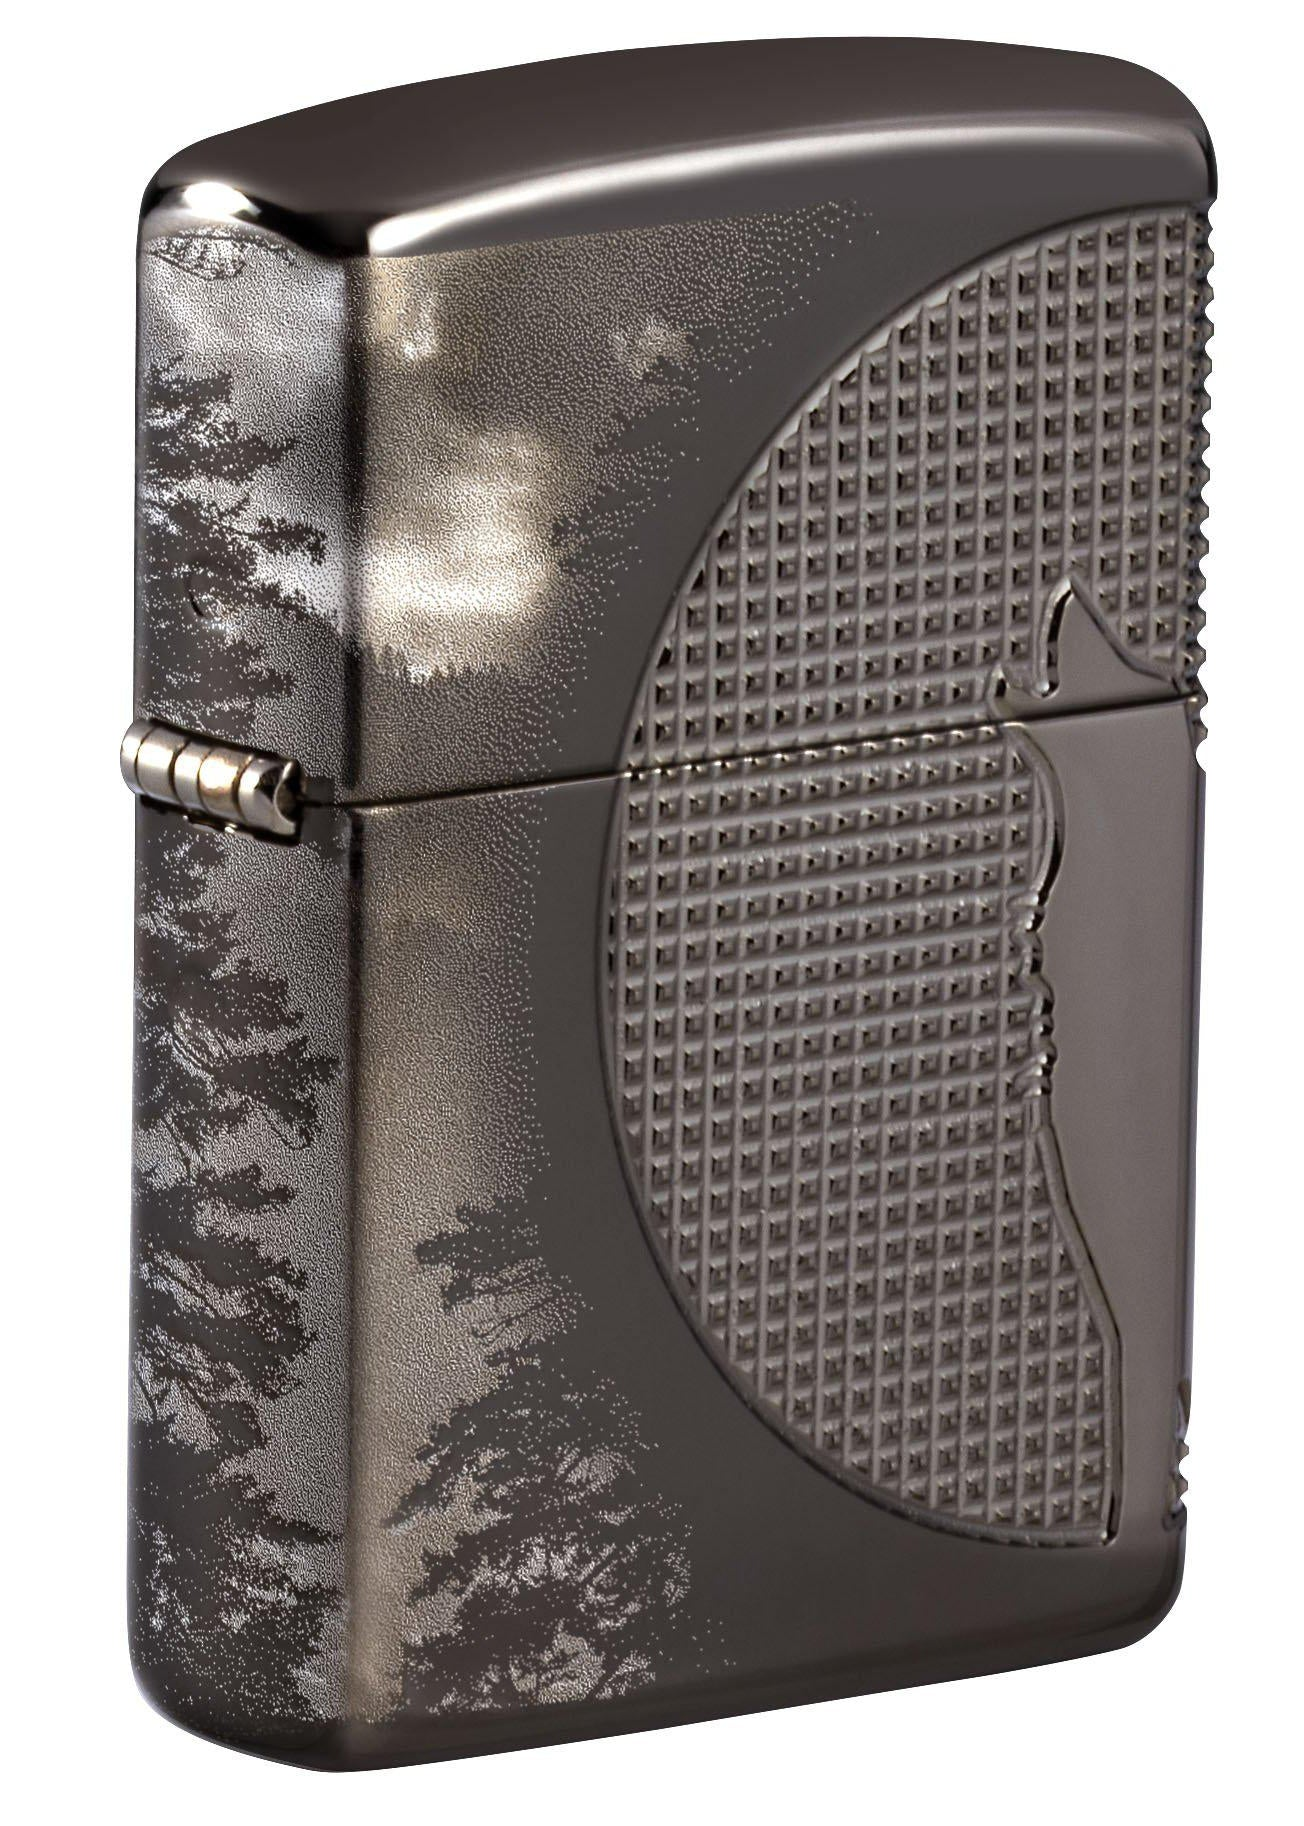 Zippo Lighter: Wolf Howling, Armor Multicut - High Polish Black Ice 49353